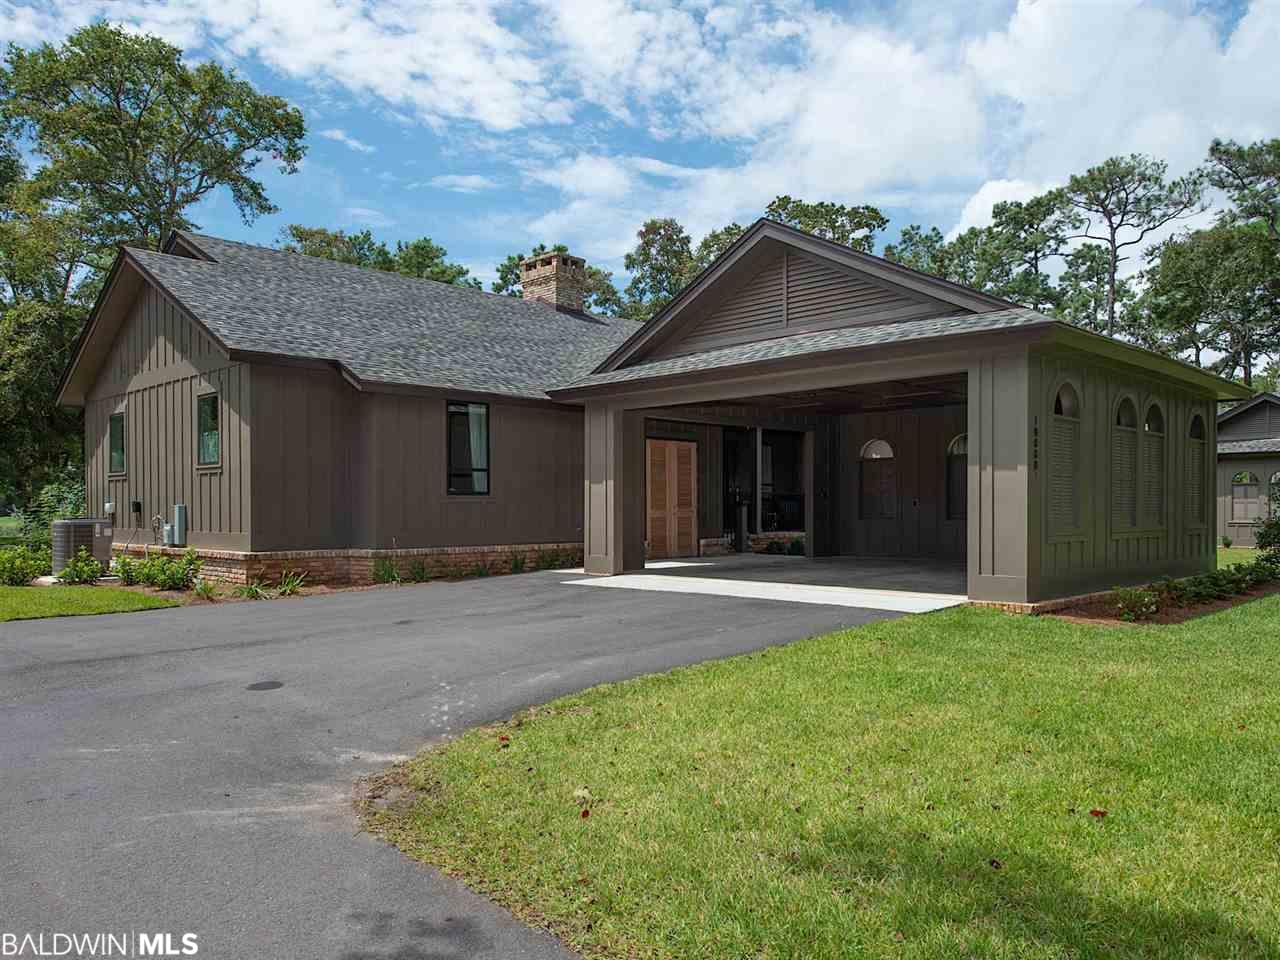 18000C-13B Quail Run 13 B, Fairhope, AL 36532